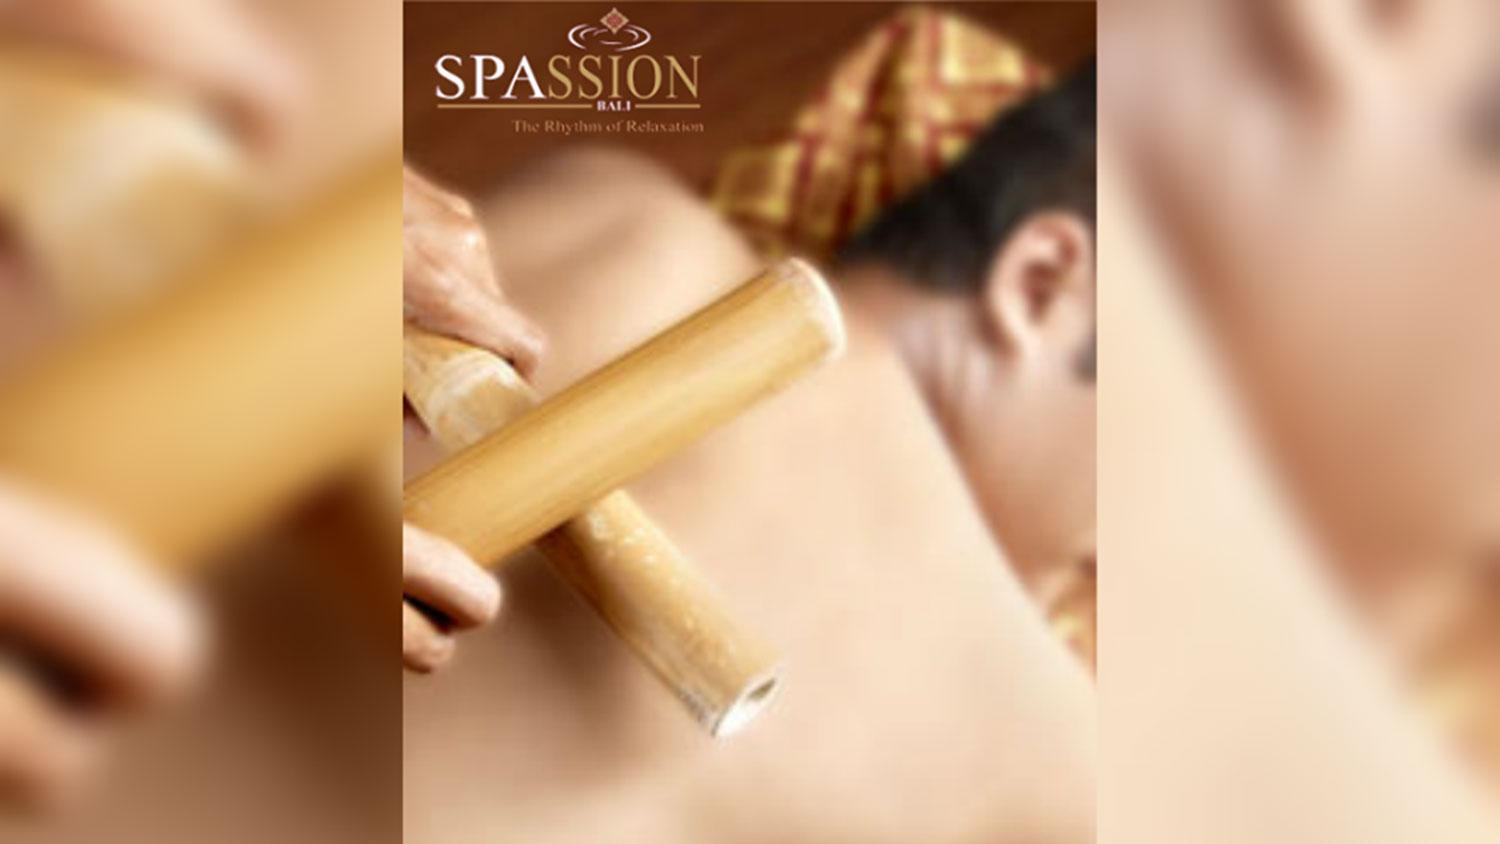 Bamboo Massage in Bali - Spassion